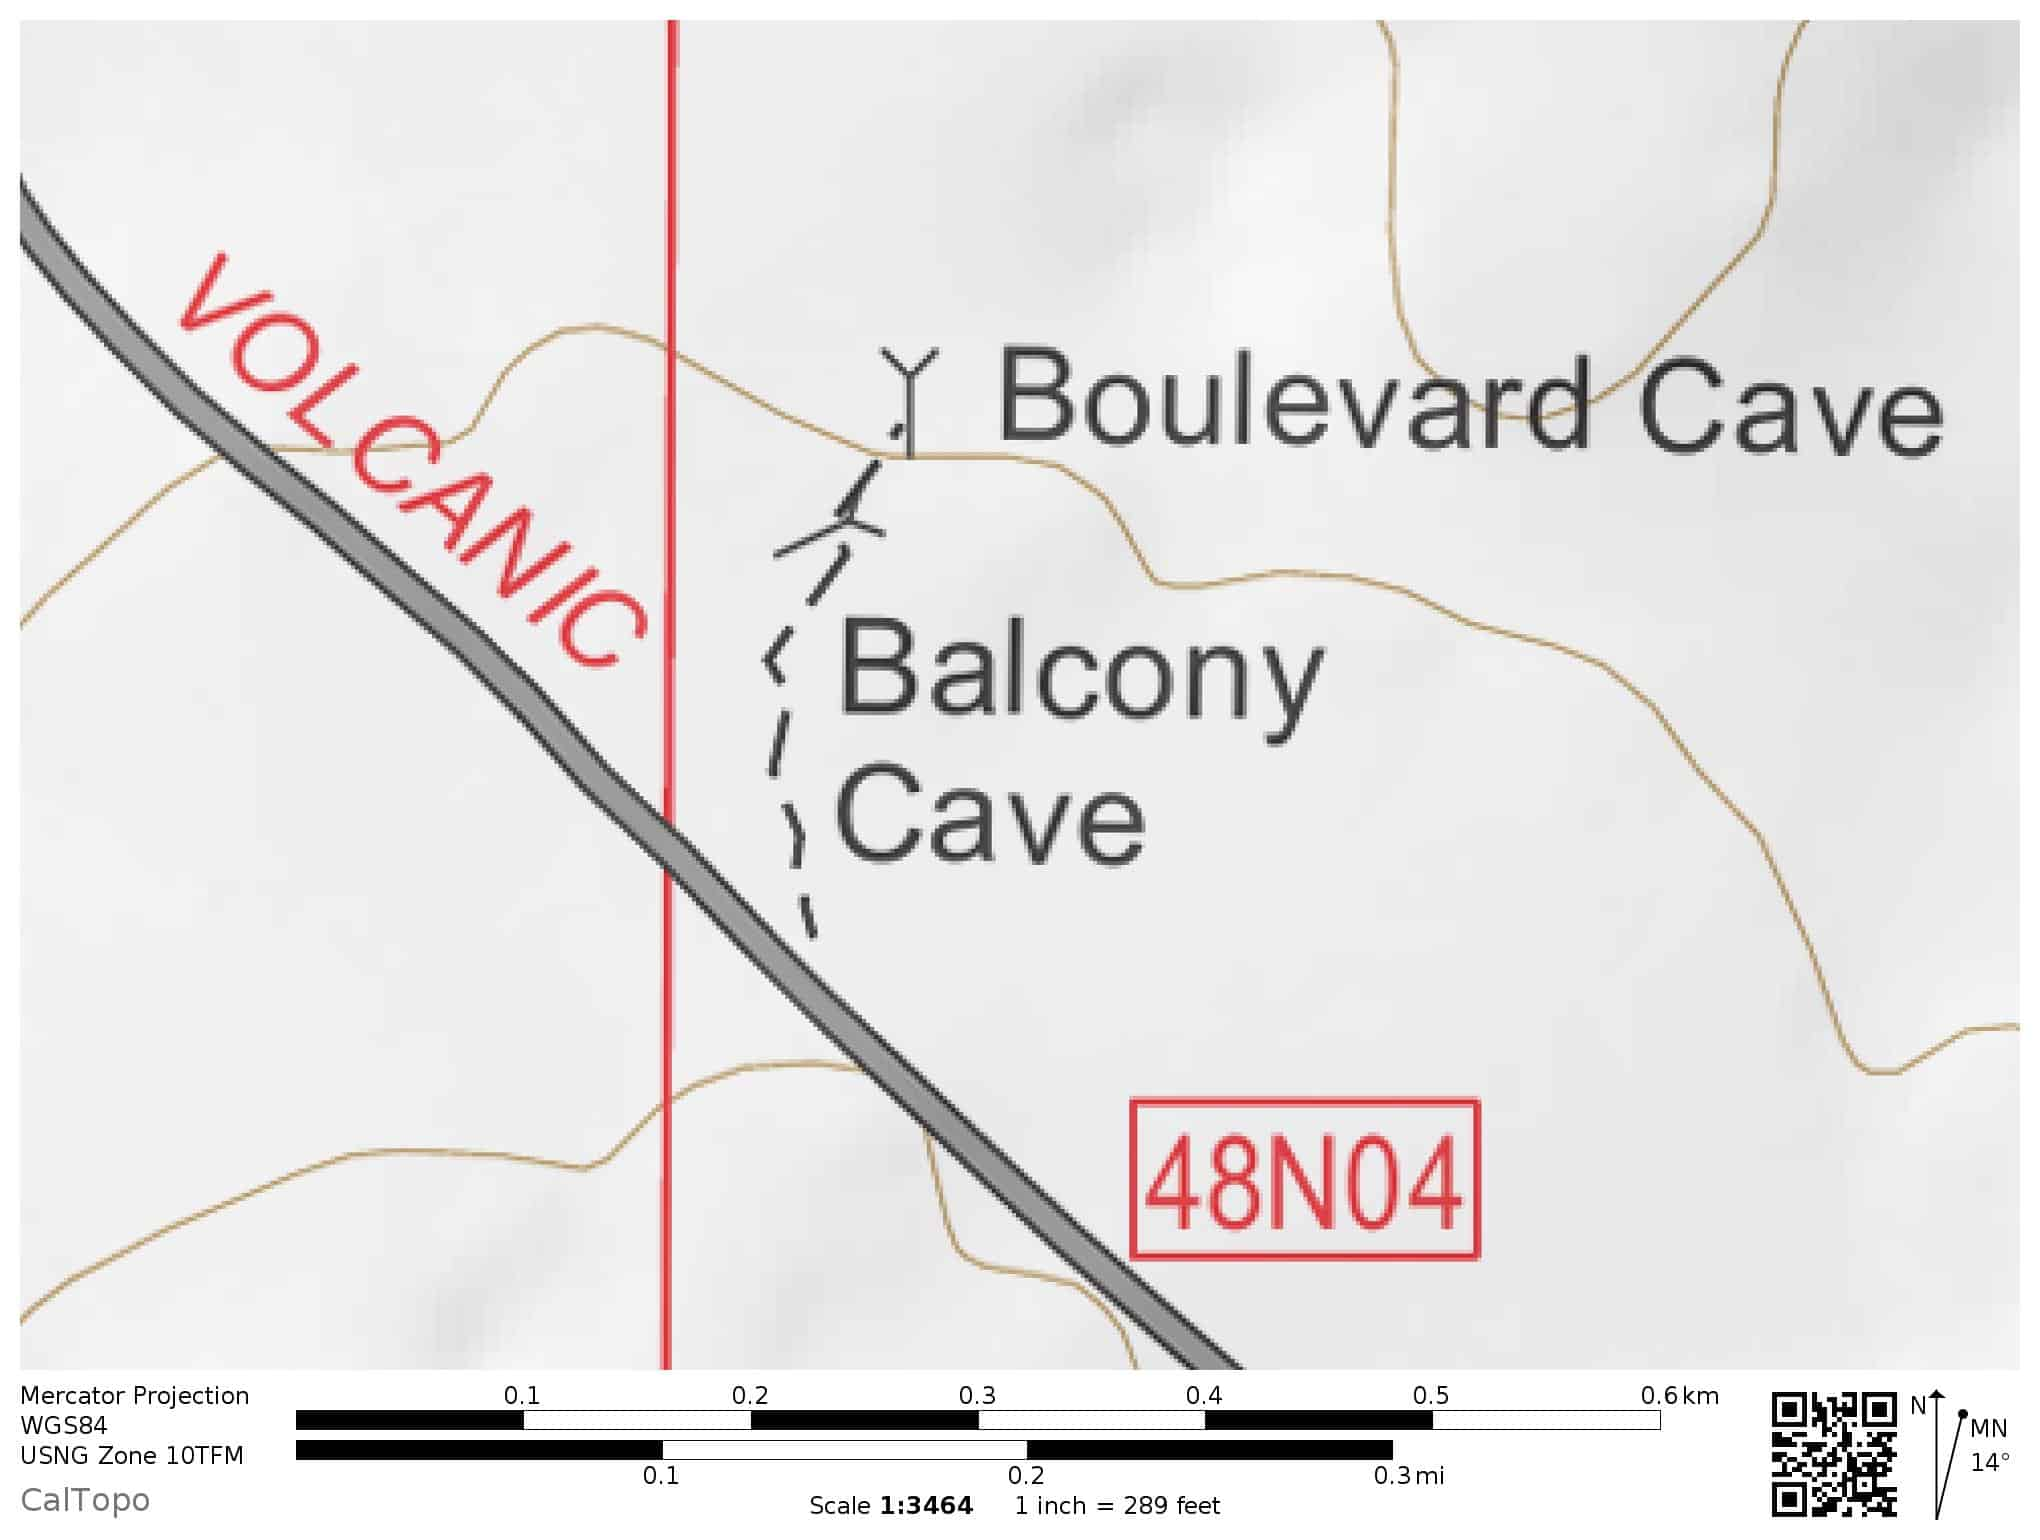 Trail Map: Balcony Cave, Boulevard Cave, Lava Beds National Monument. The short hiking trail leaves from Lava Beds National Monument Road.